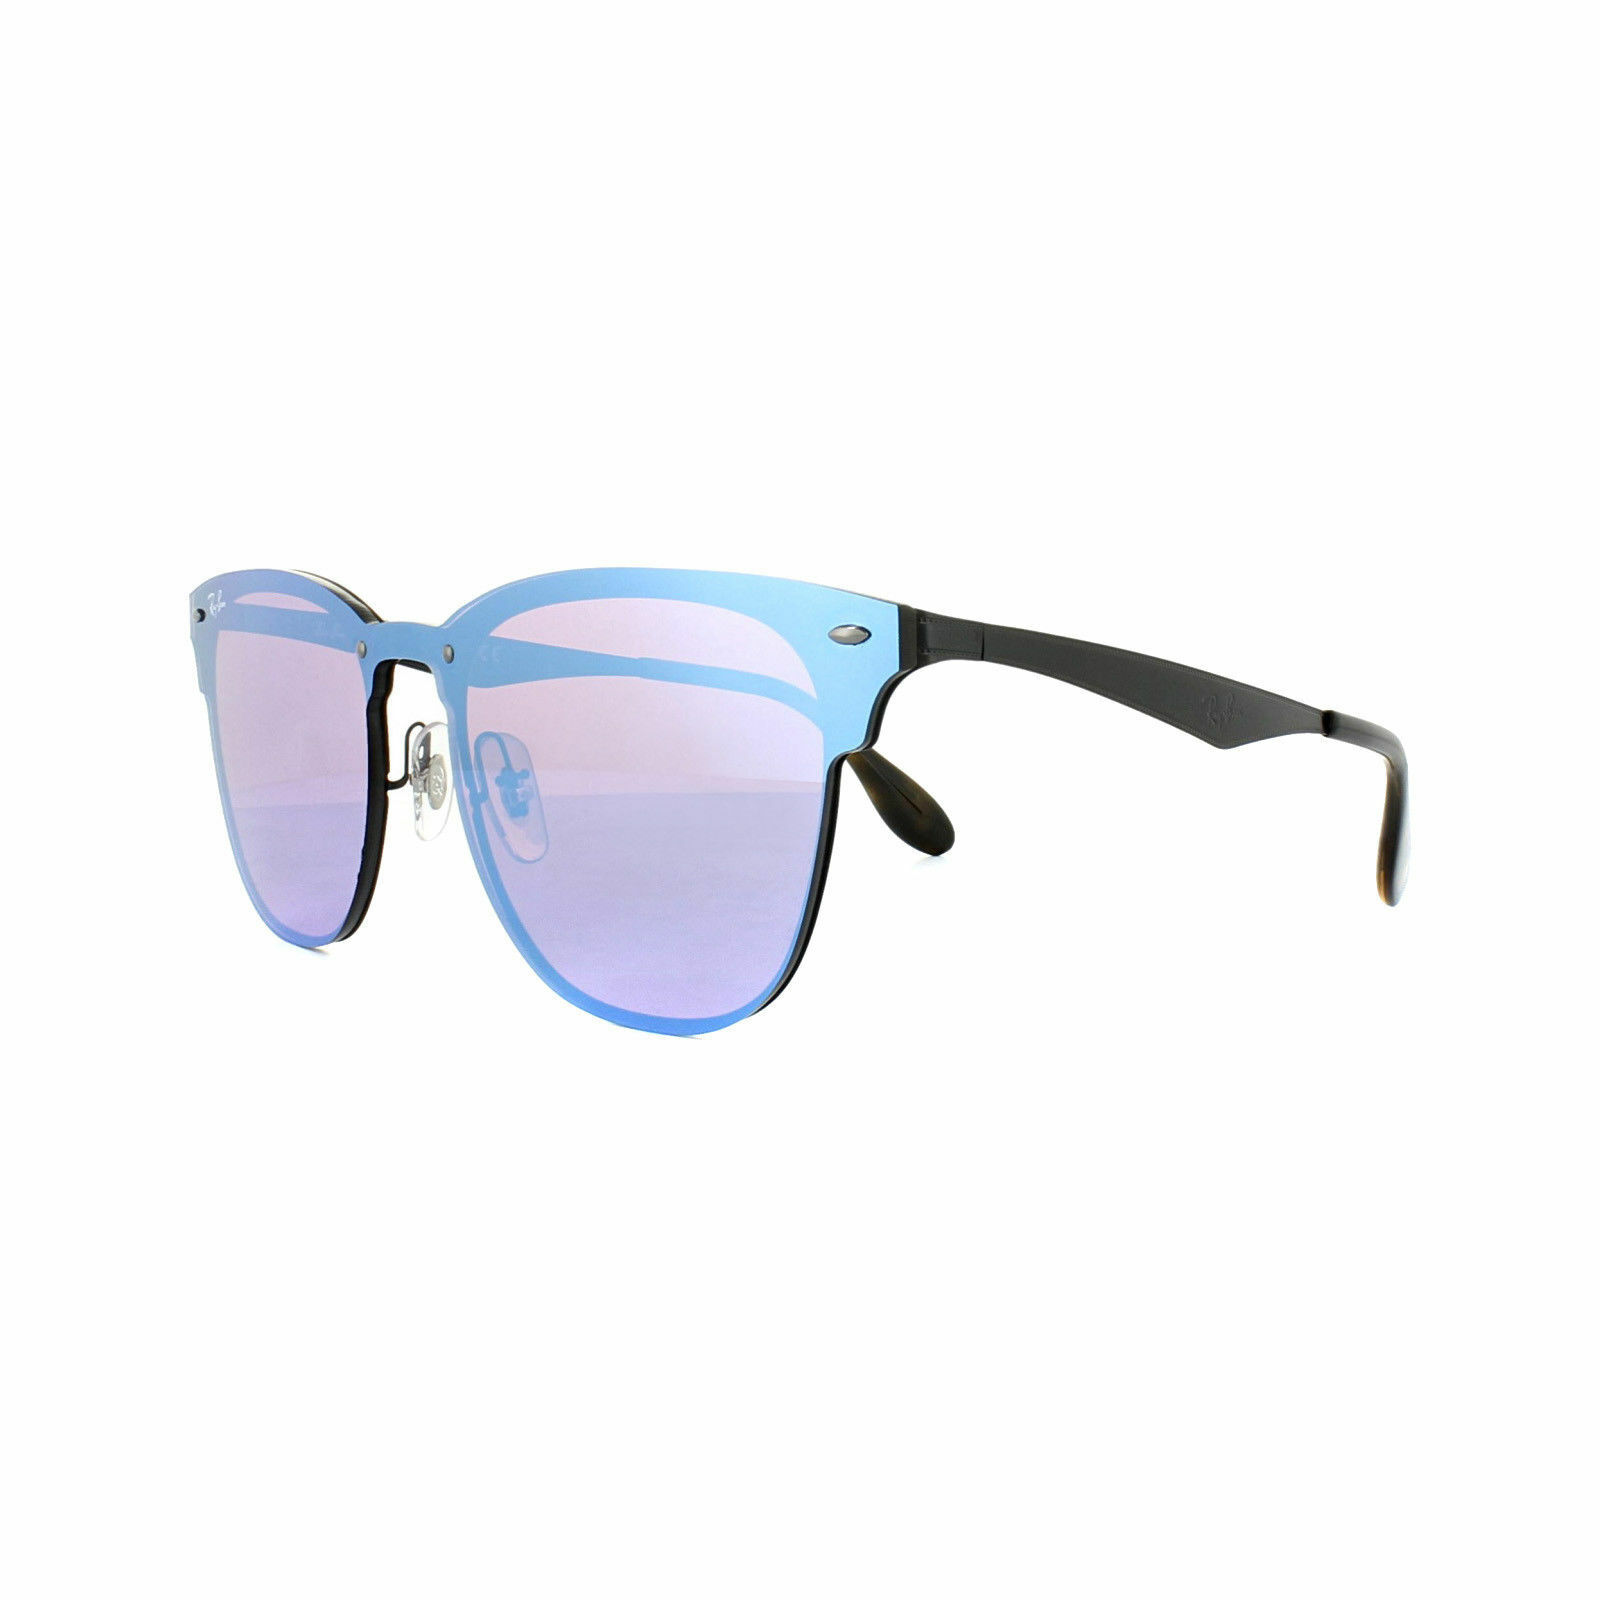 d43e5029341 Ray-Ban 3576n 153 7v Sunglasses Blaze Clubmaster Black Blue Mirror ...